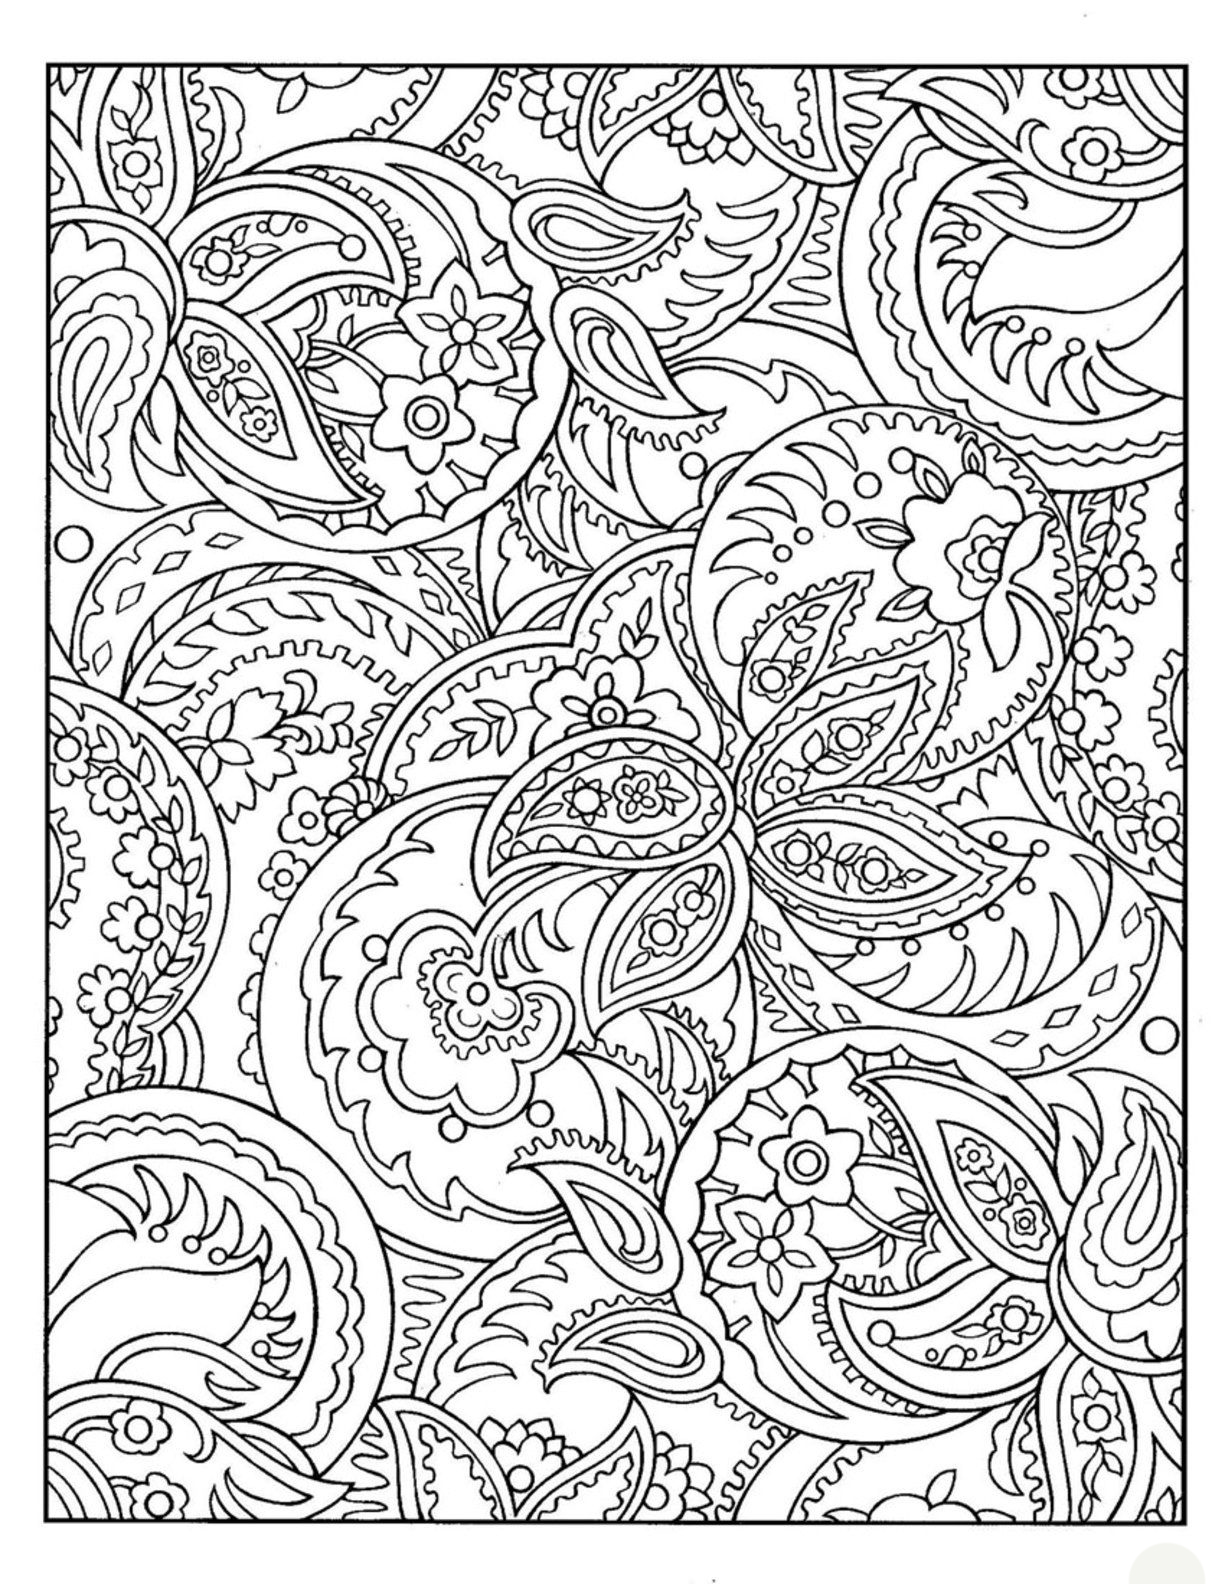 coloring pages patterns | Pattern Coloring Pages - Best Coloring Pages For Kids